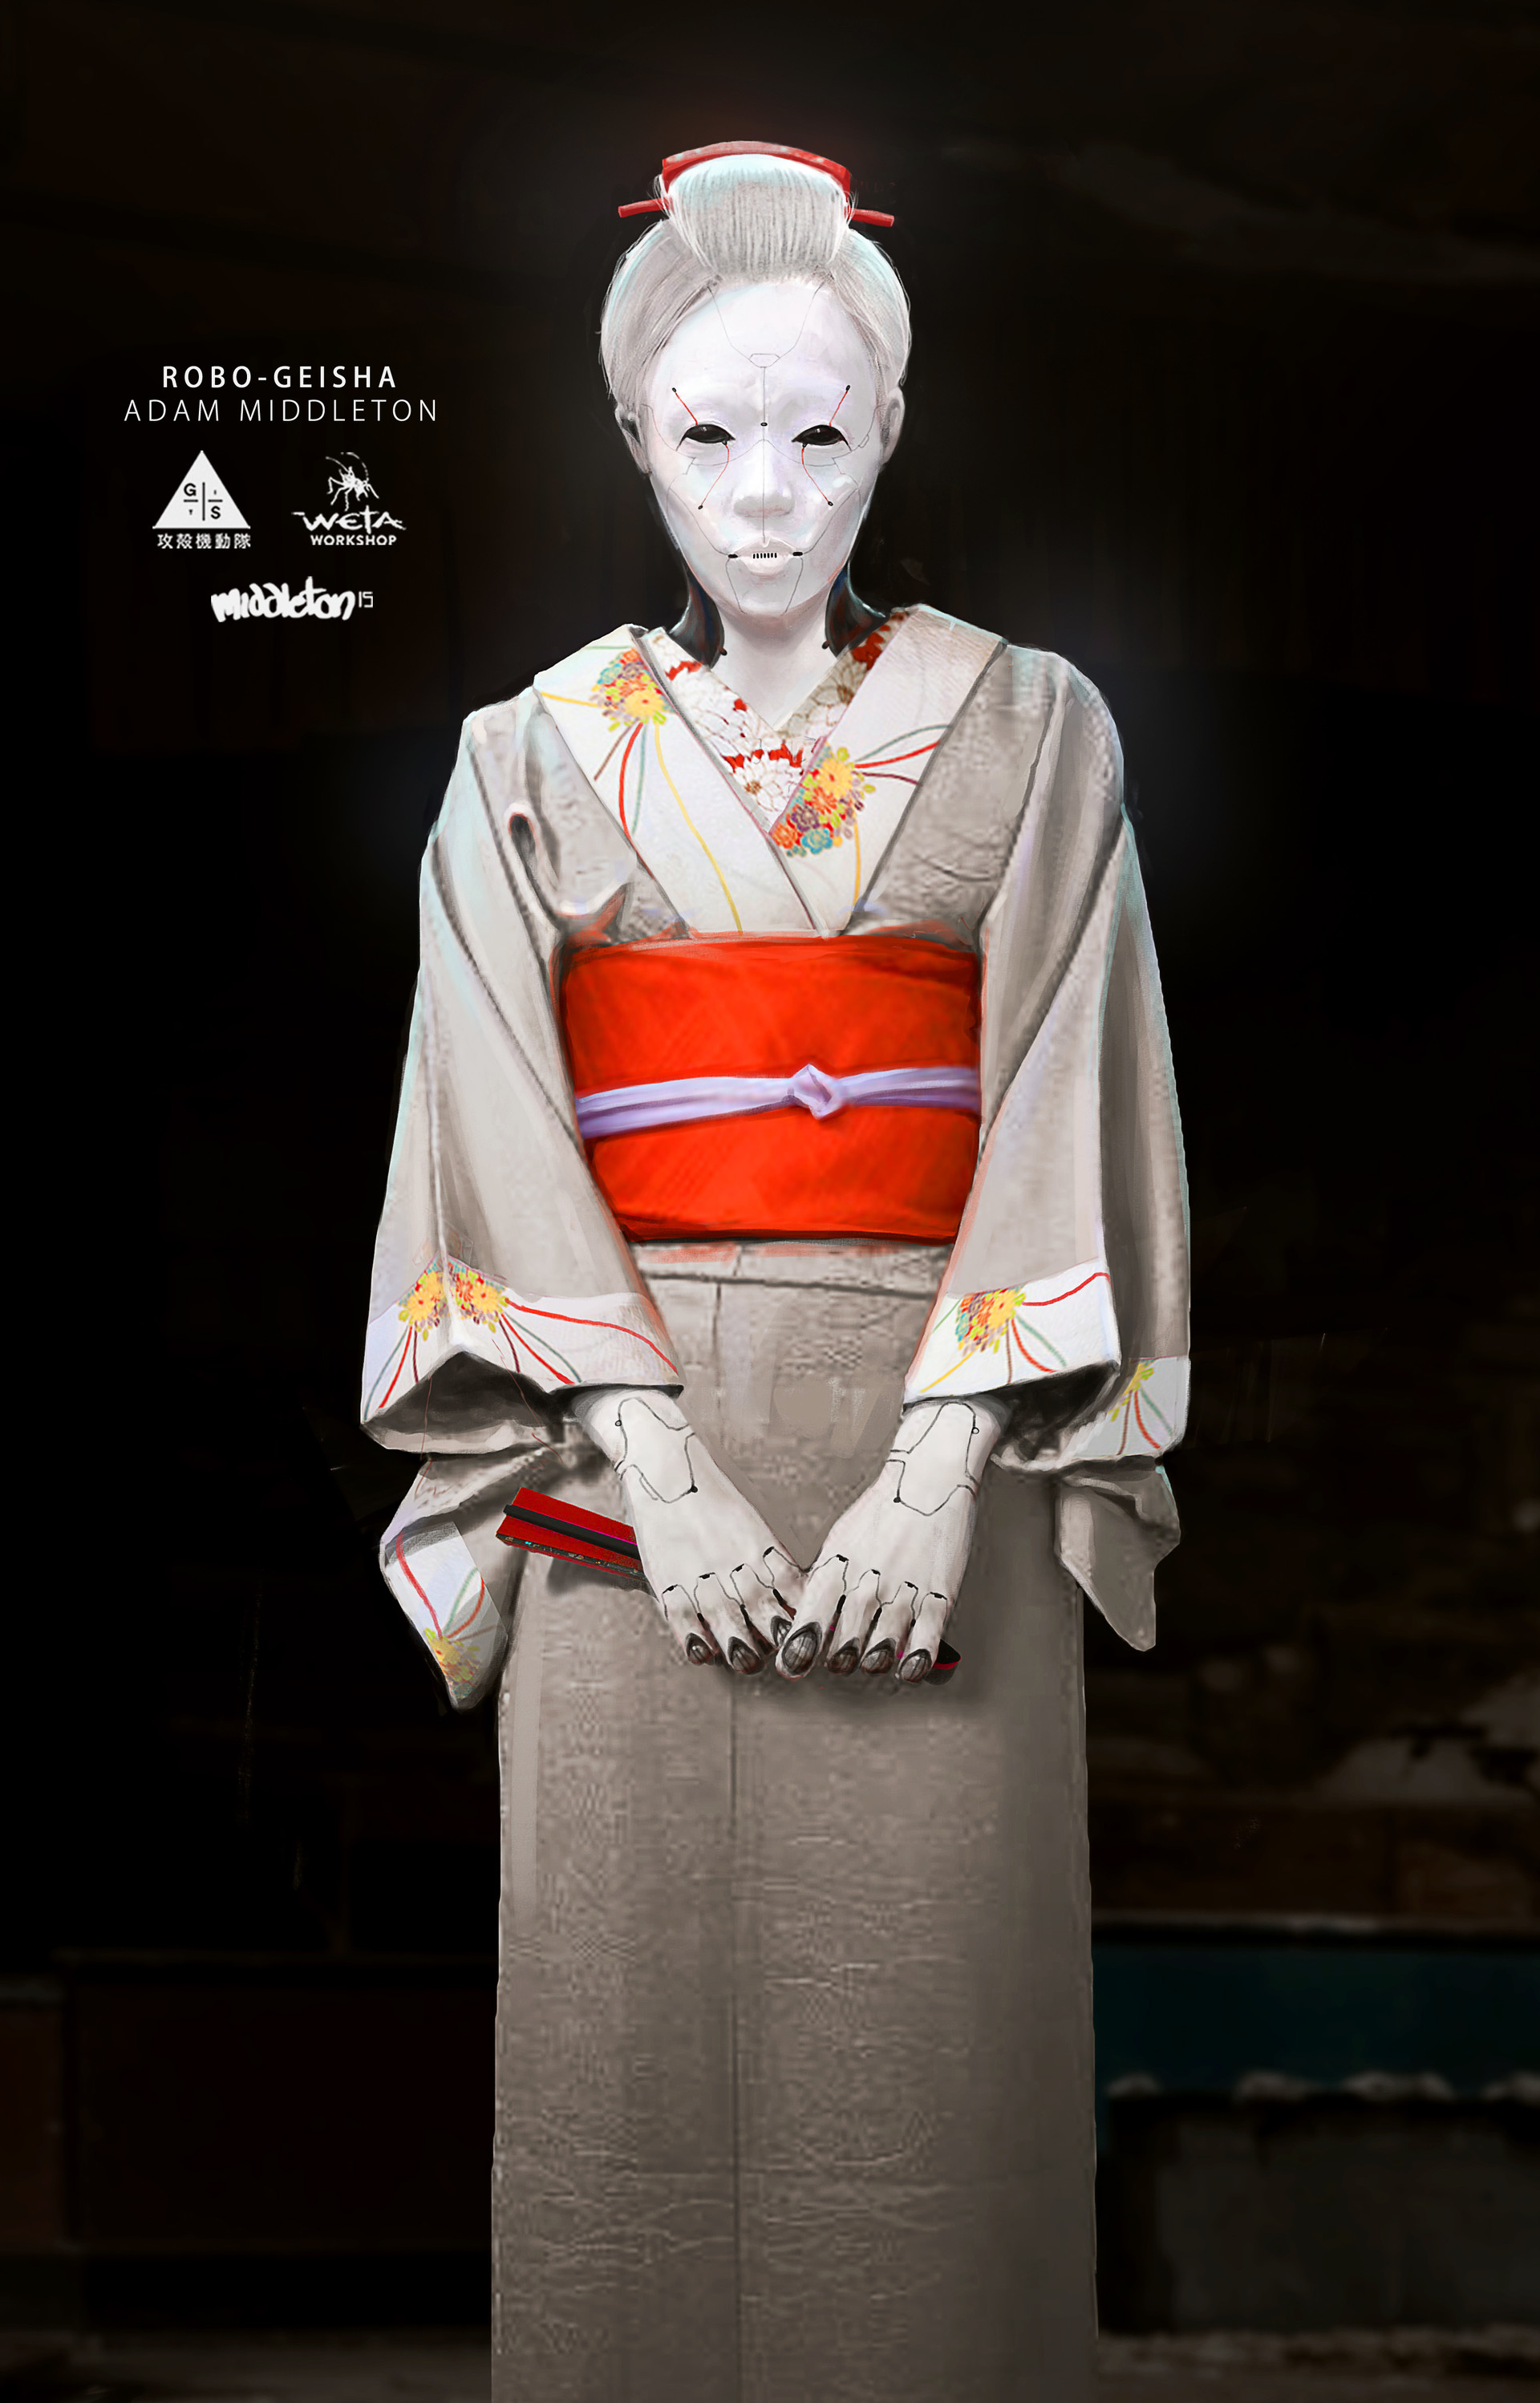 Weta workshop design studio gs geisha 07 updated am